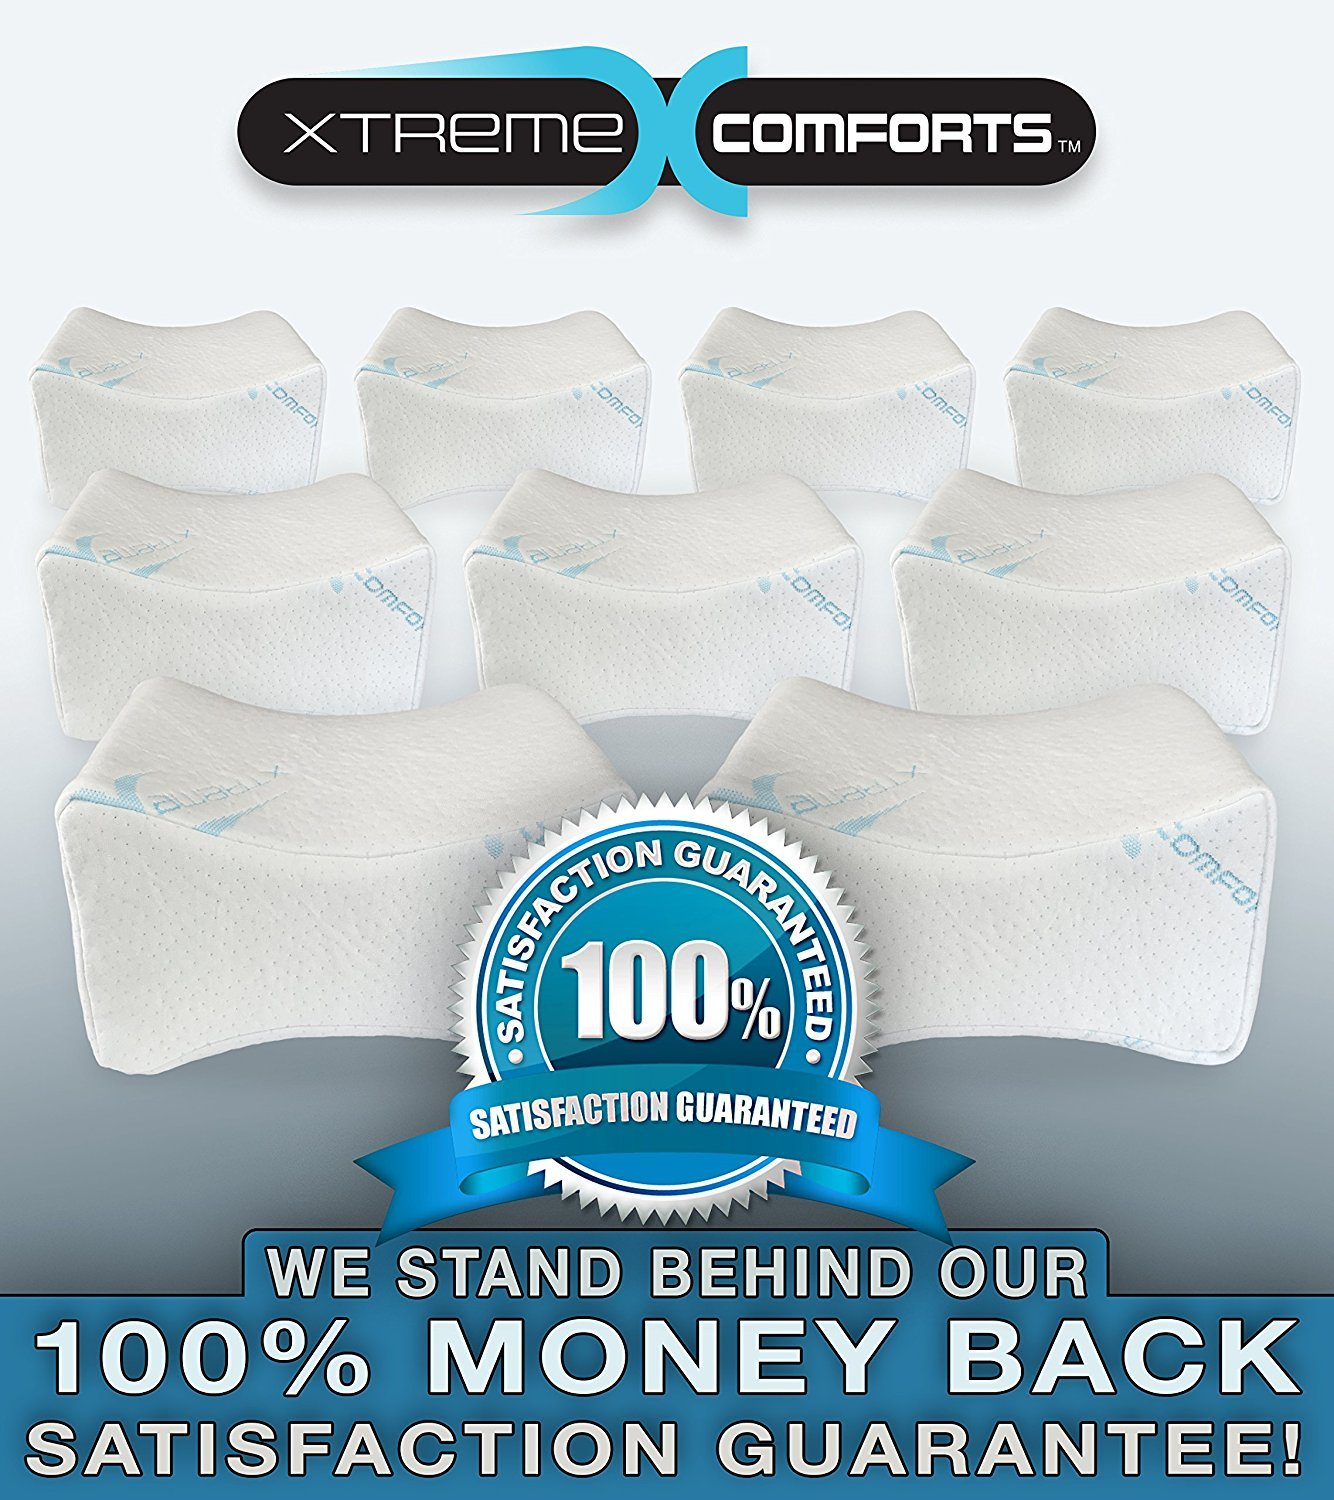 Orthopedic Memory Foam Knee Pillow – Contoured Pain Relief Support Wedge For Sciatic Nerve, Hip Joint, Leg & Back Pain – Hypoallergenic Washable Bamboo Cover - Side Sleepers Xtreme Comforts (3 Pack)